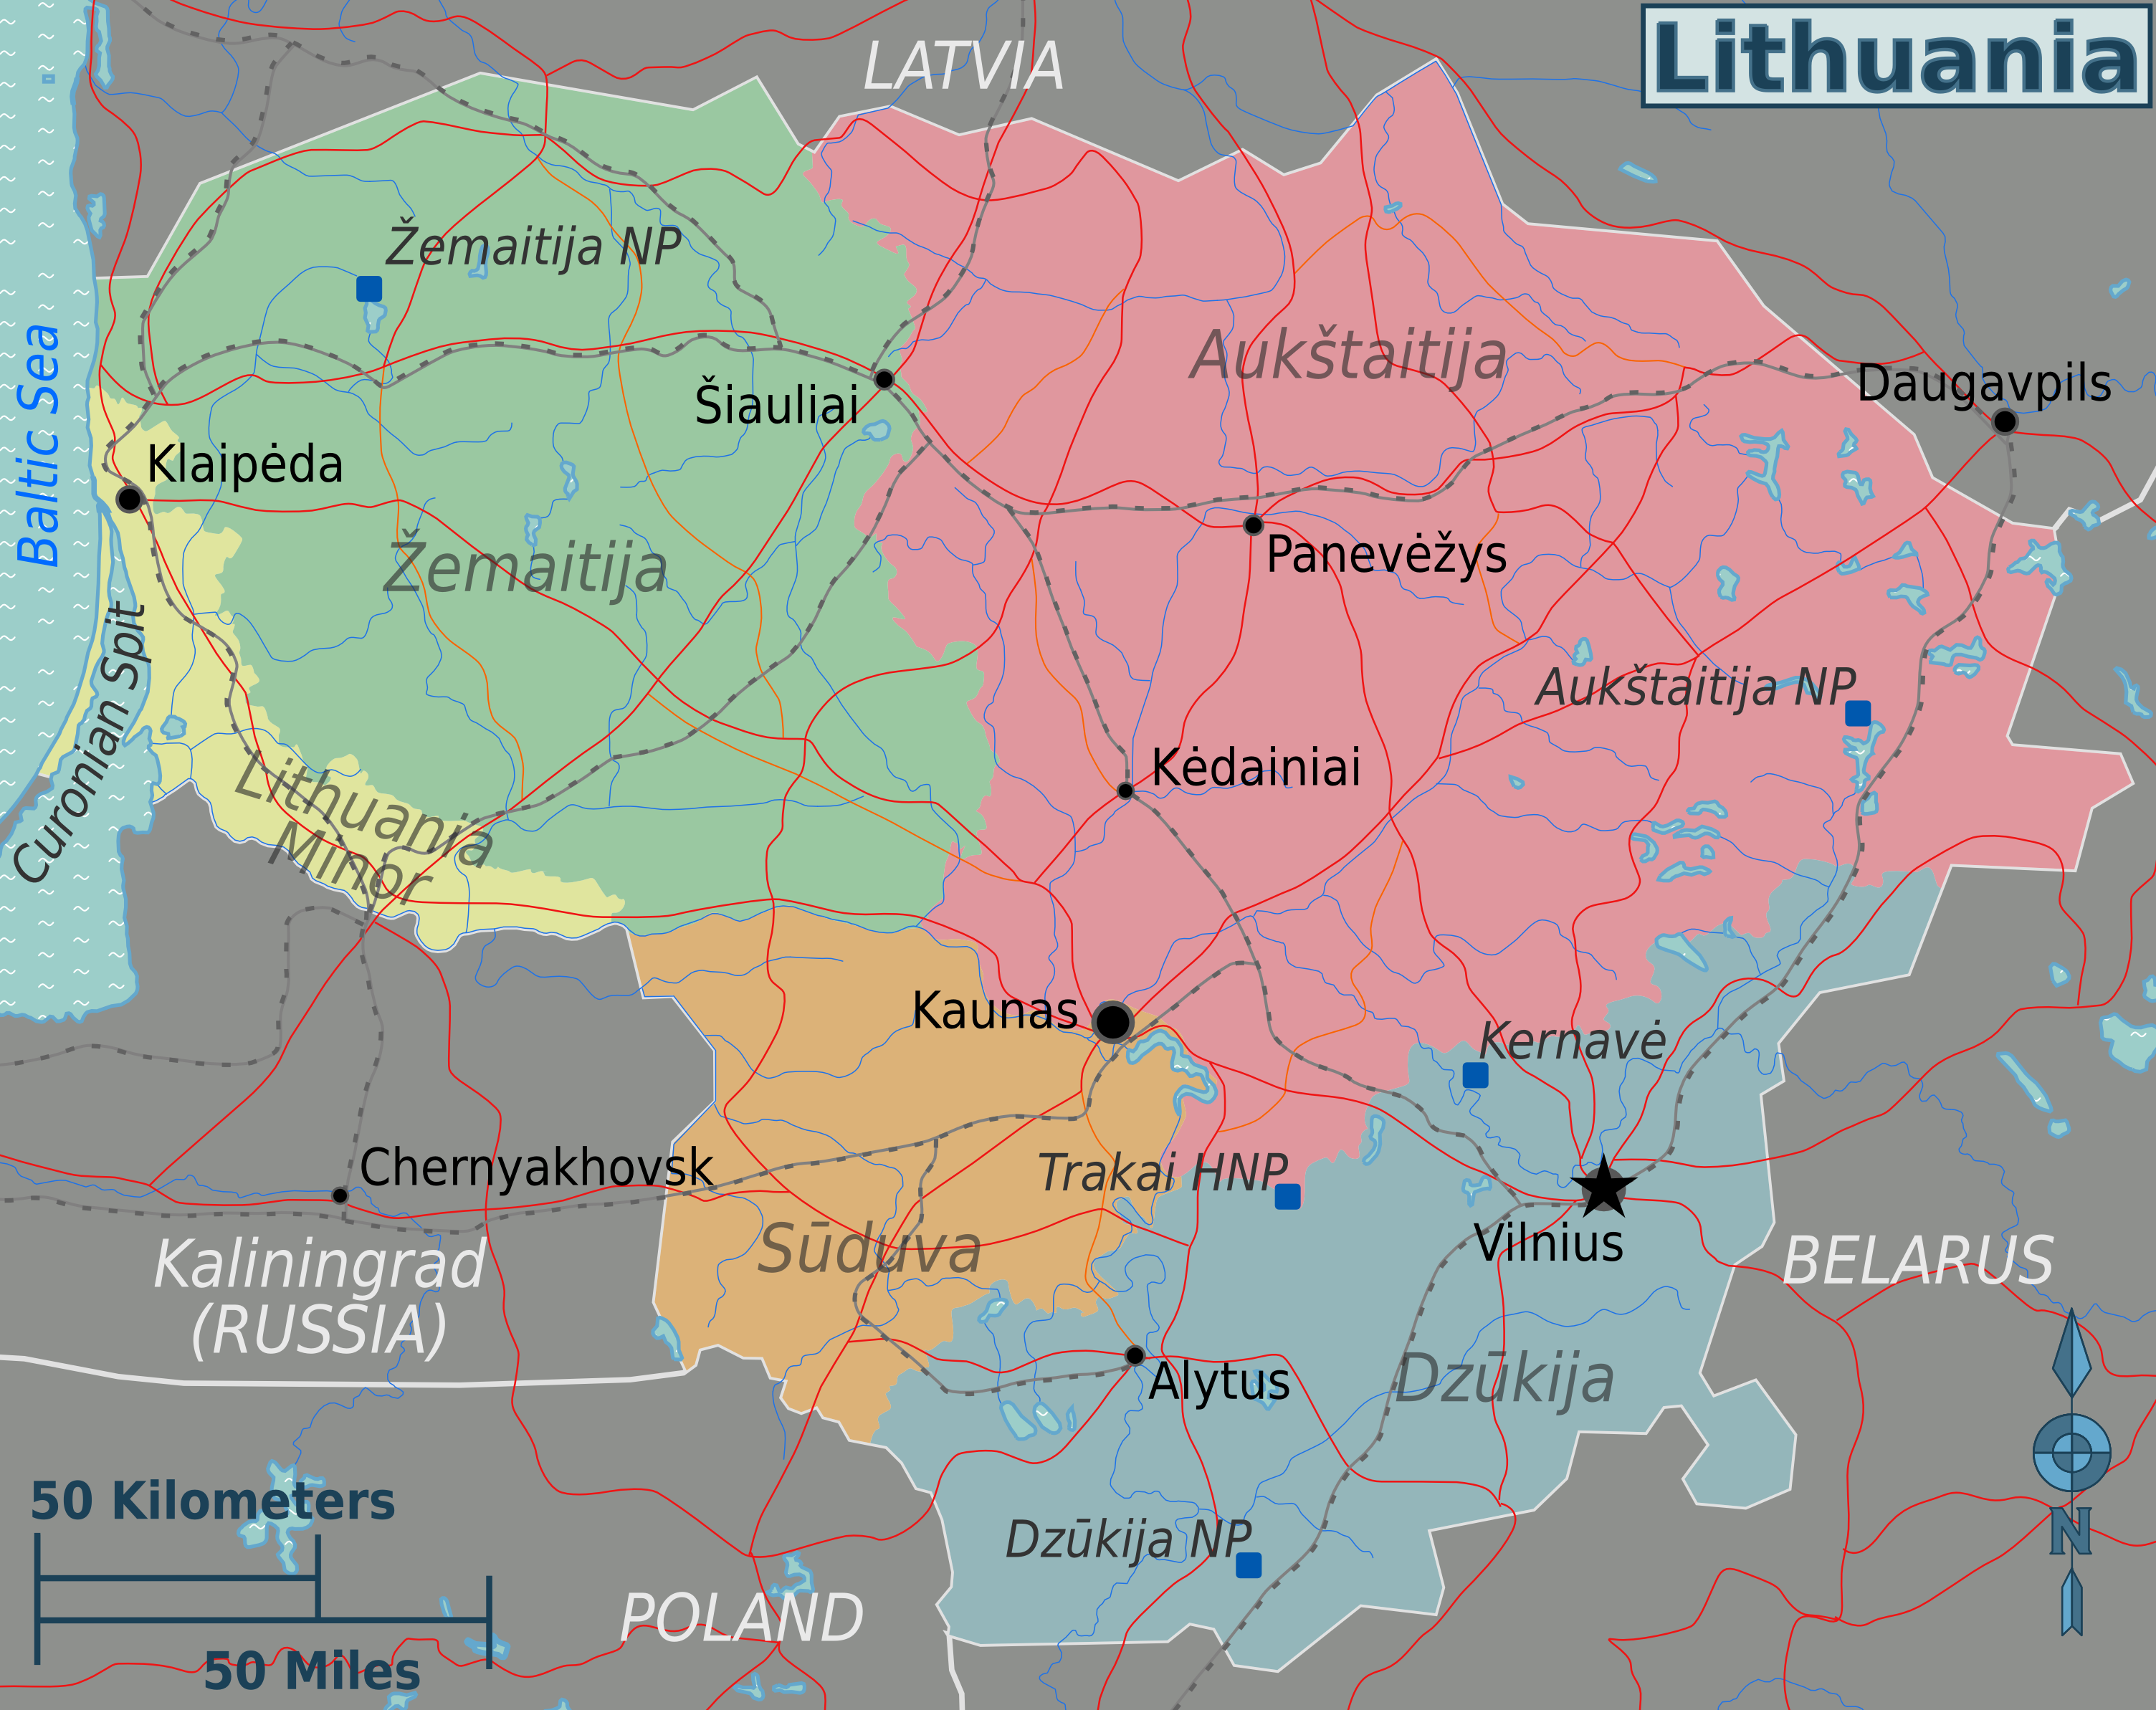 baltic nations map with File Lithuania Regions Map on Map Shows Global Importance And Reach Of Nato 2016 3 as well Intersped Launches Weekly Groupage Service To Baltic States moreover Balto Slavic languages together with The Ebb And Flow Of Russia In Europe also Europe.